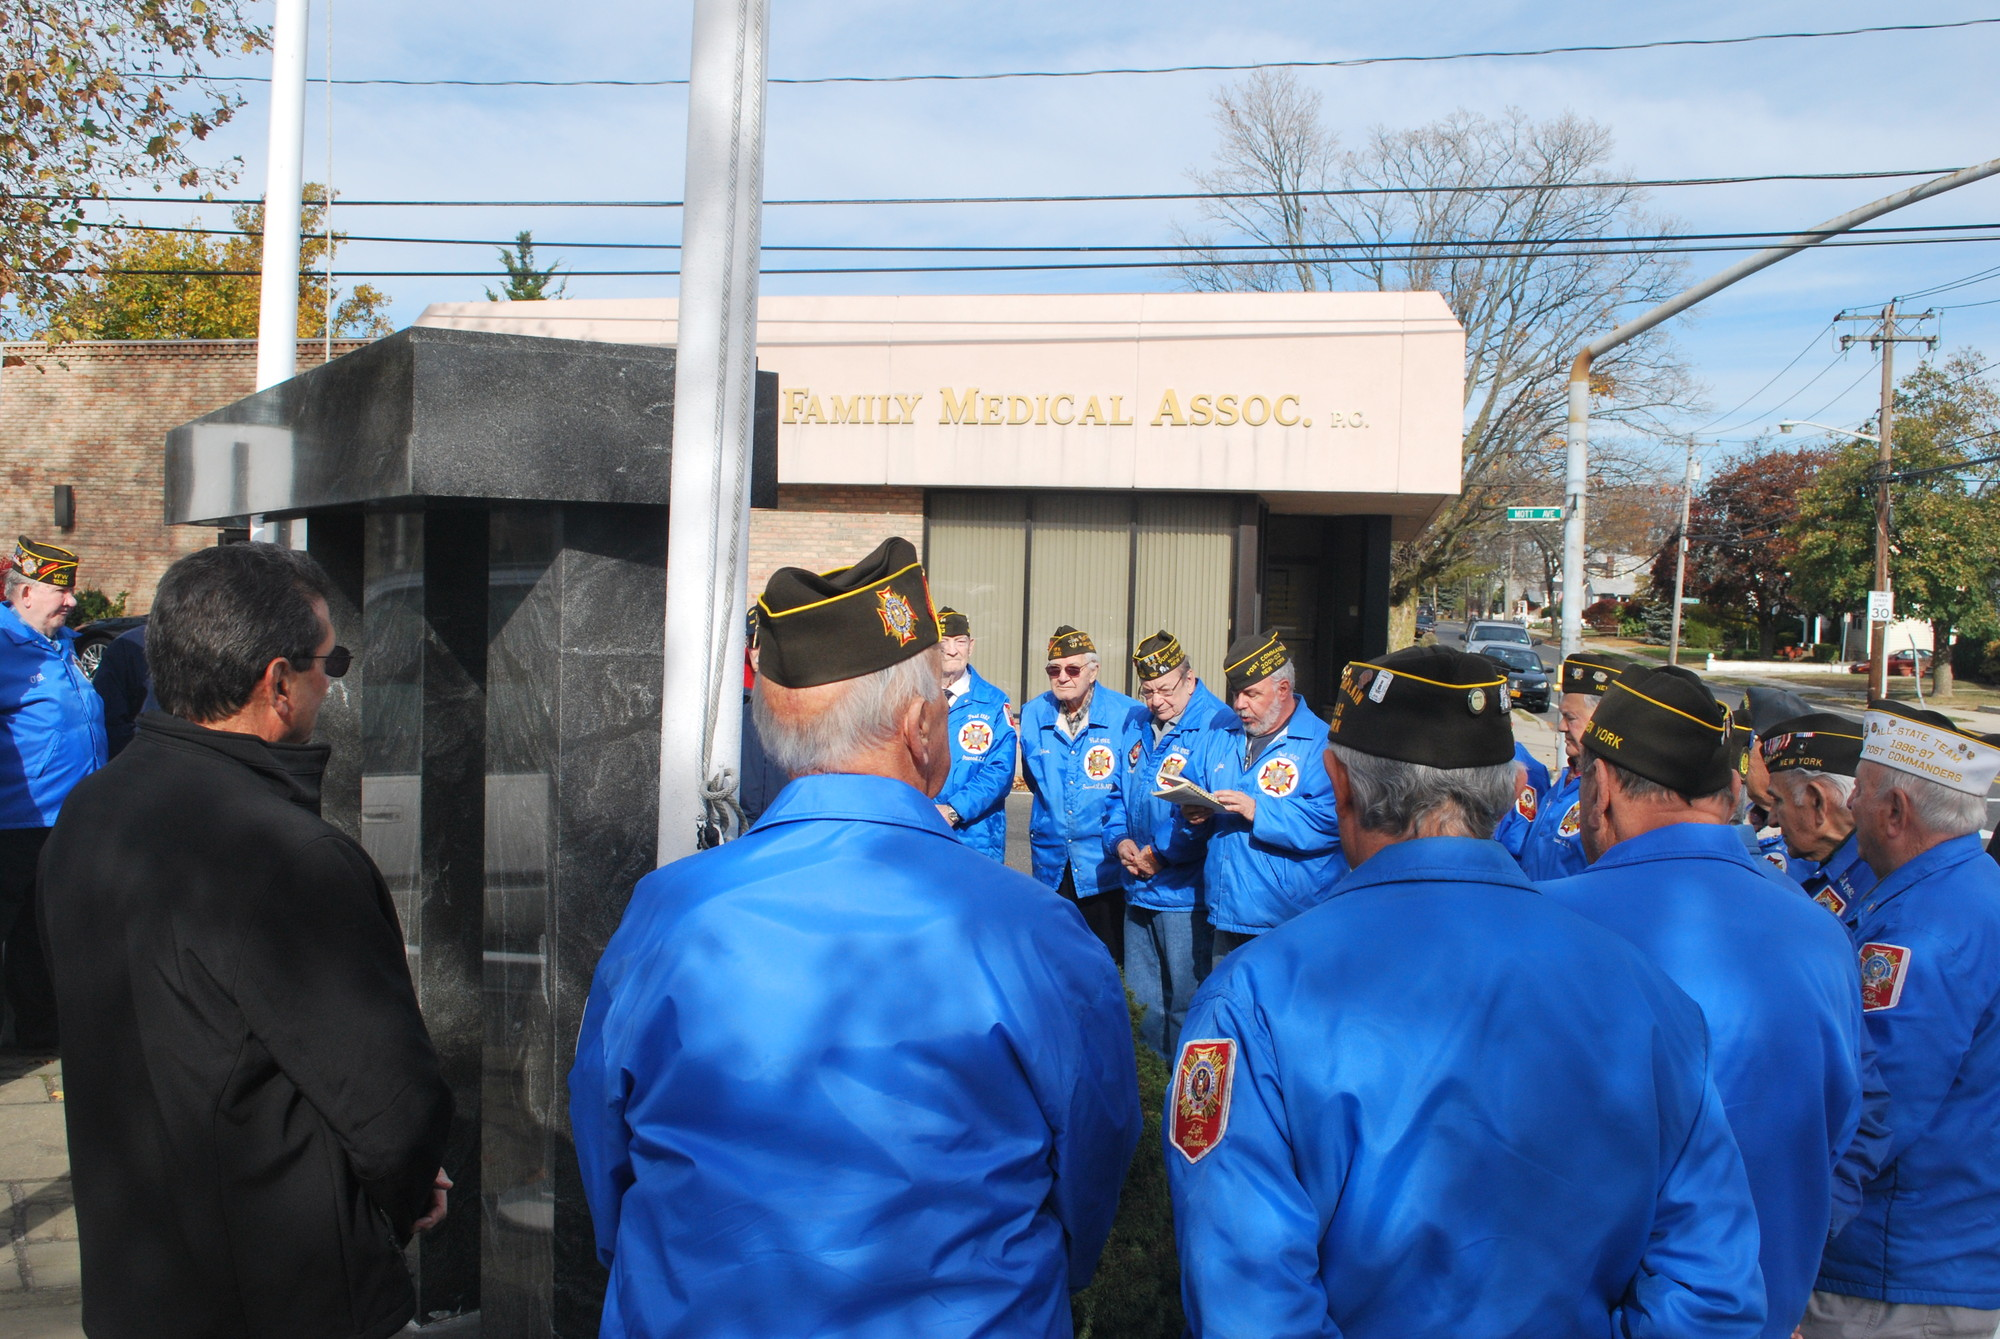 Inwood Post 1582 held its annual Veterans Day ceremony on Monday. Post Commander Joe Squitieri (with book) conducted the service.